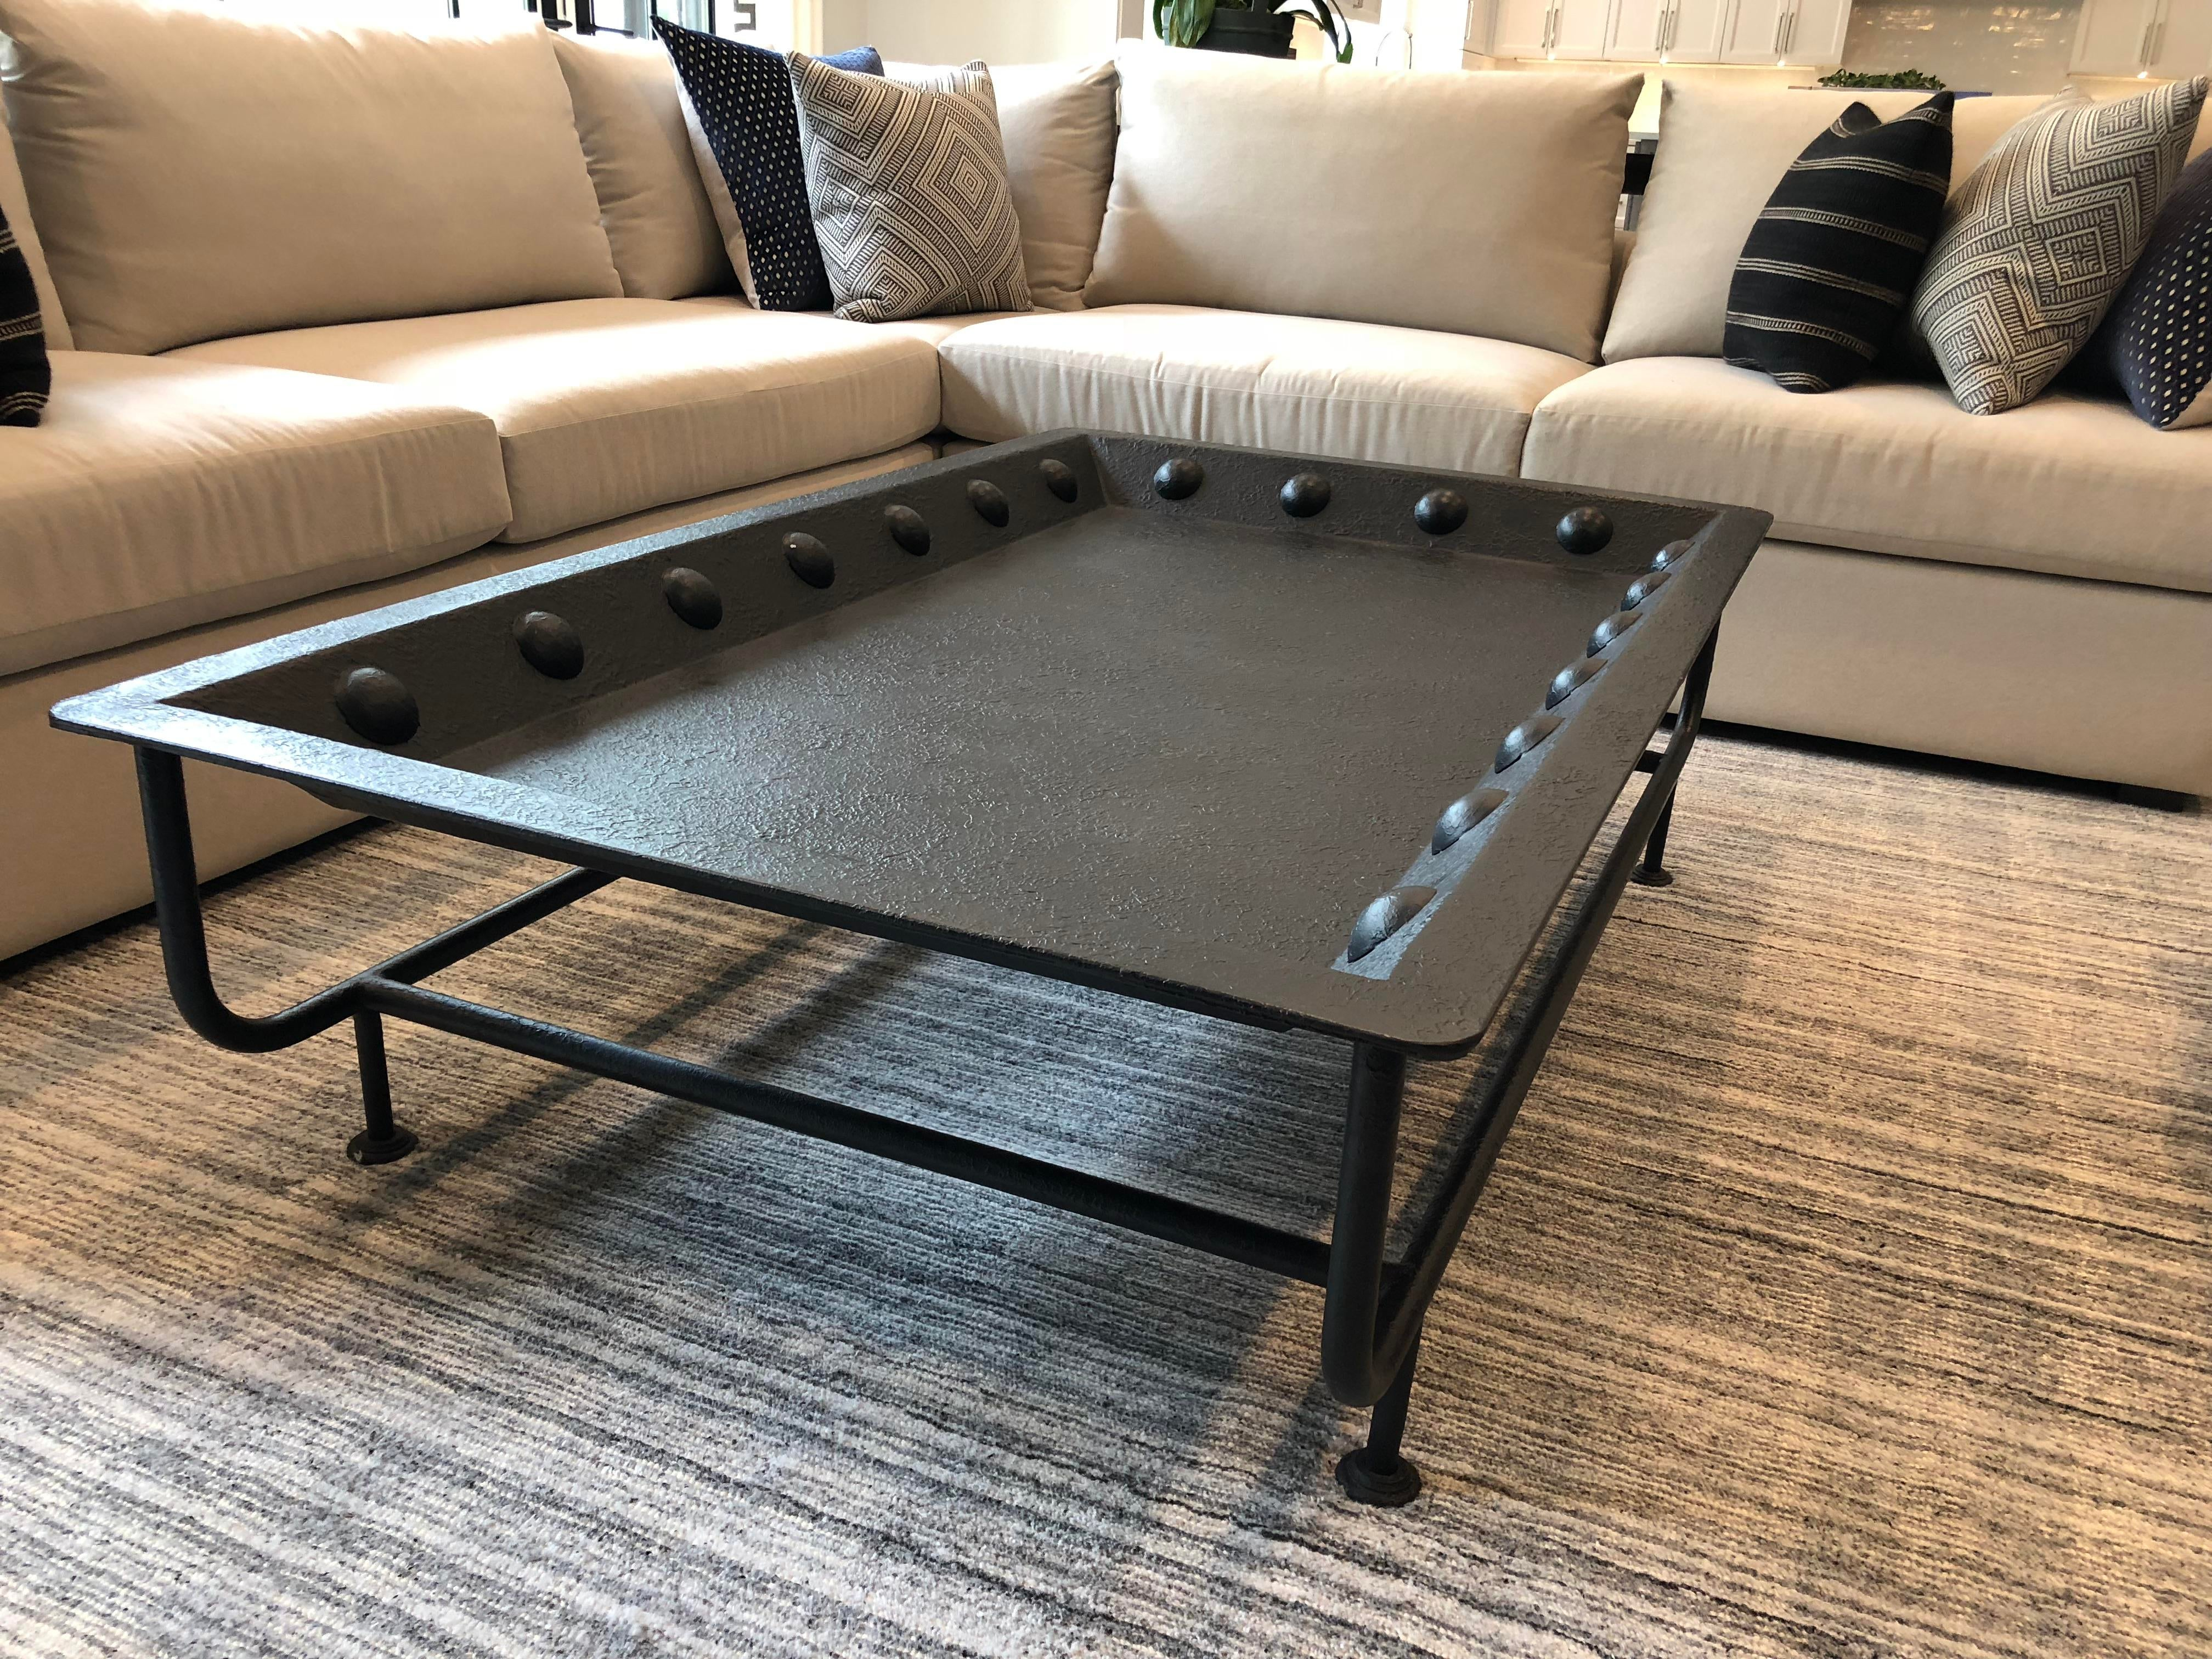 Iron Rounded Edge Iron Coffee Table For Sale   Image 7 Of 7